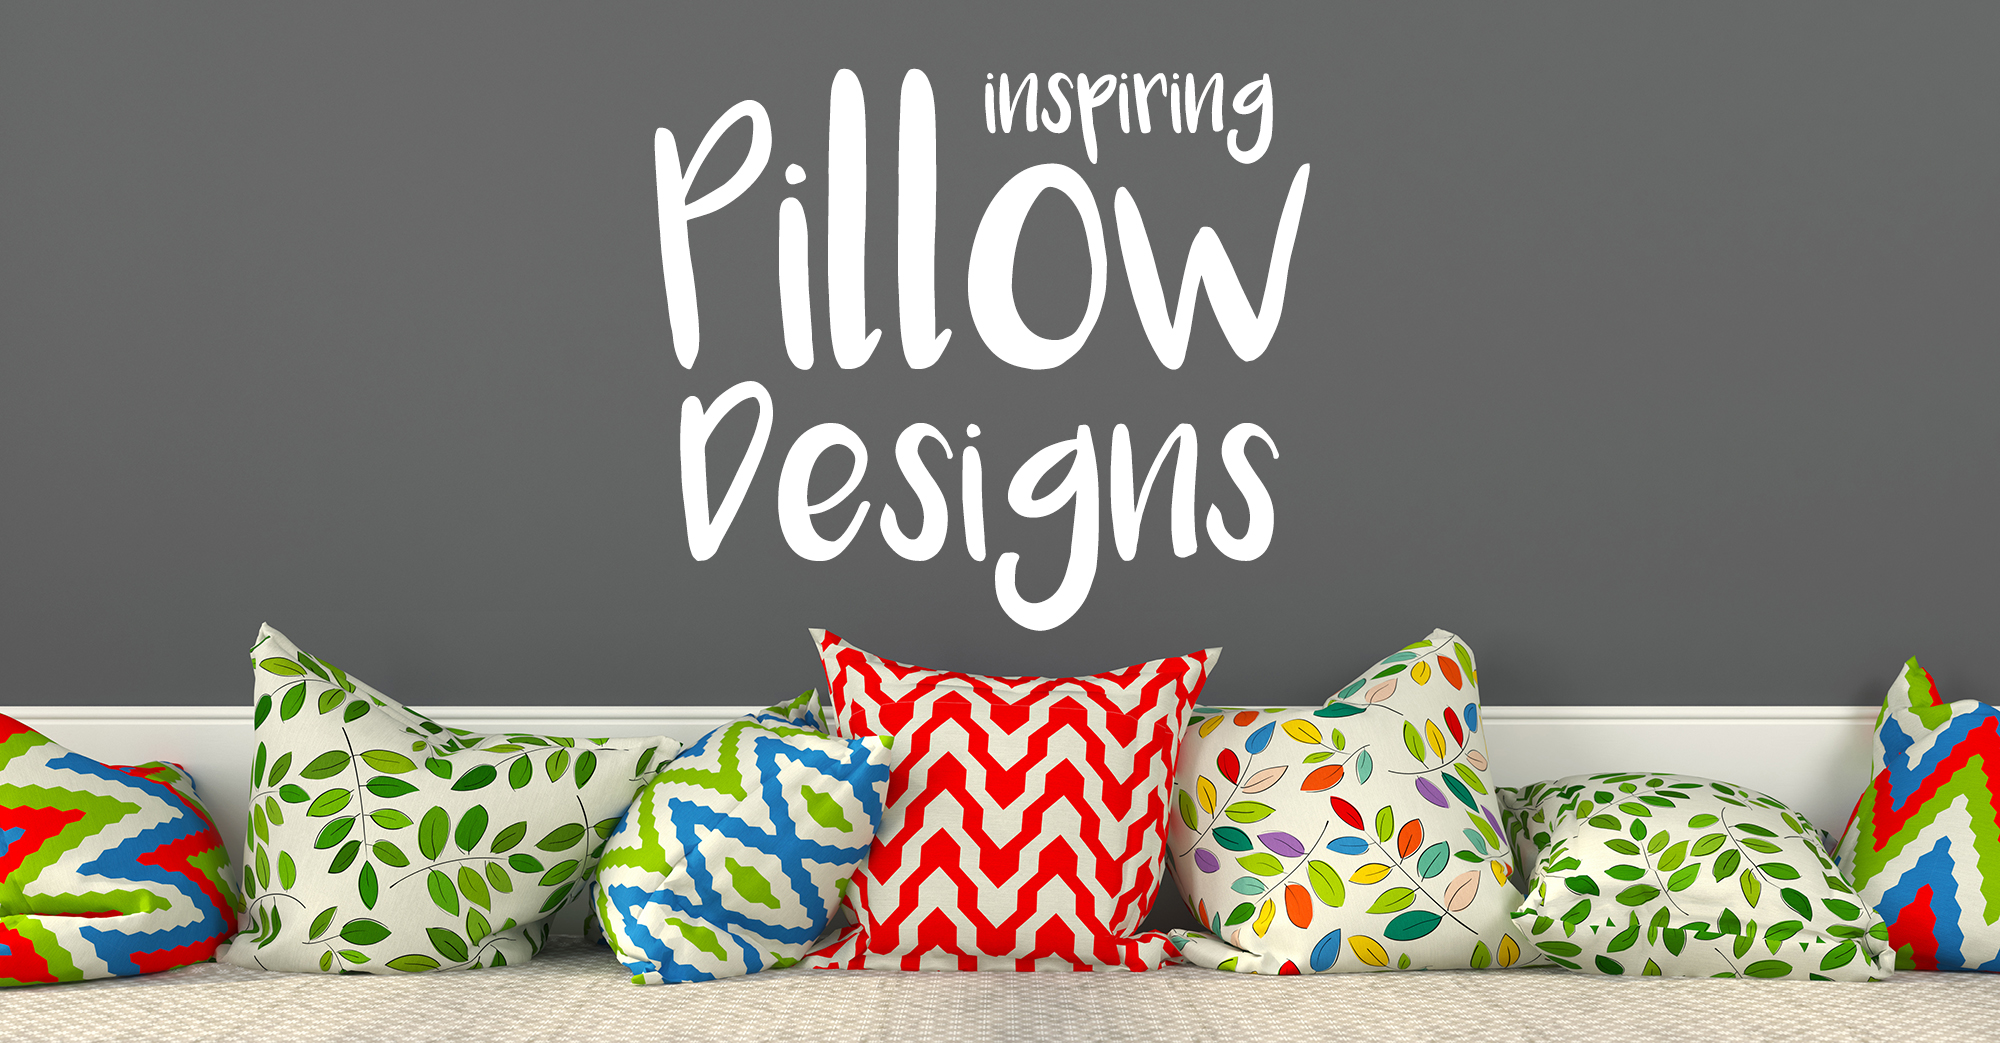 Inspiring Pillow Designs